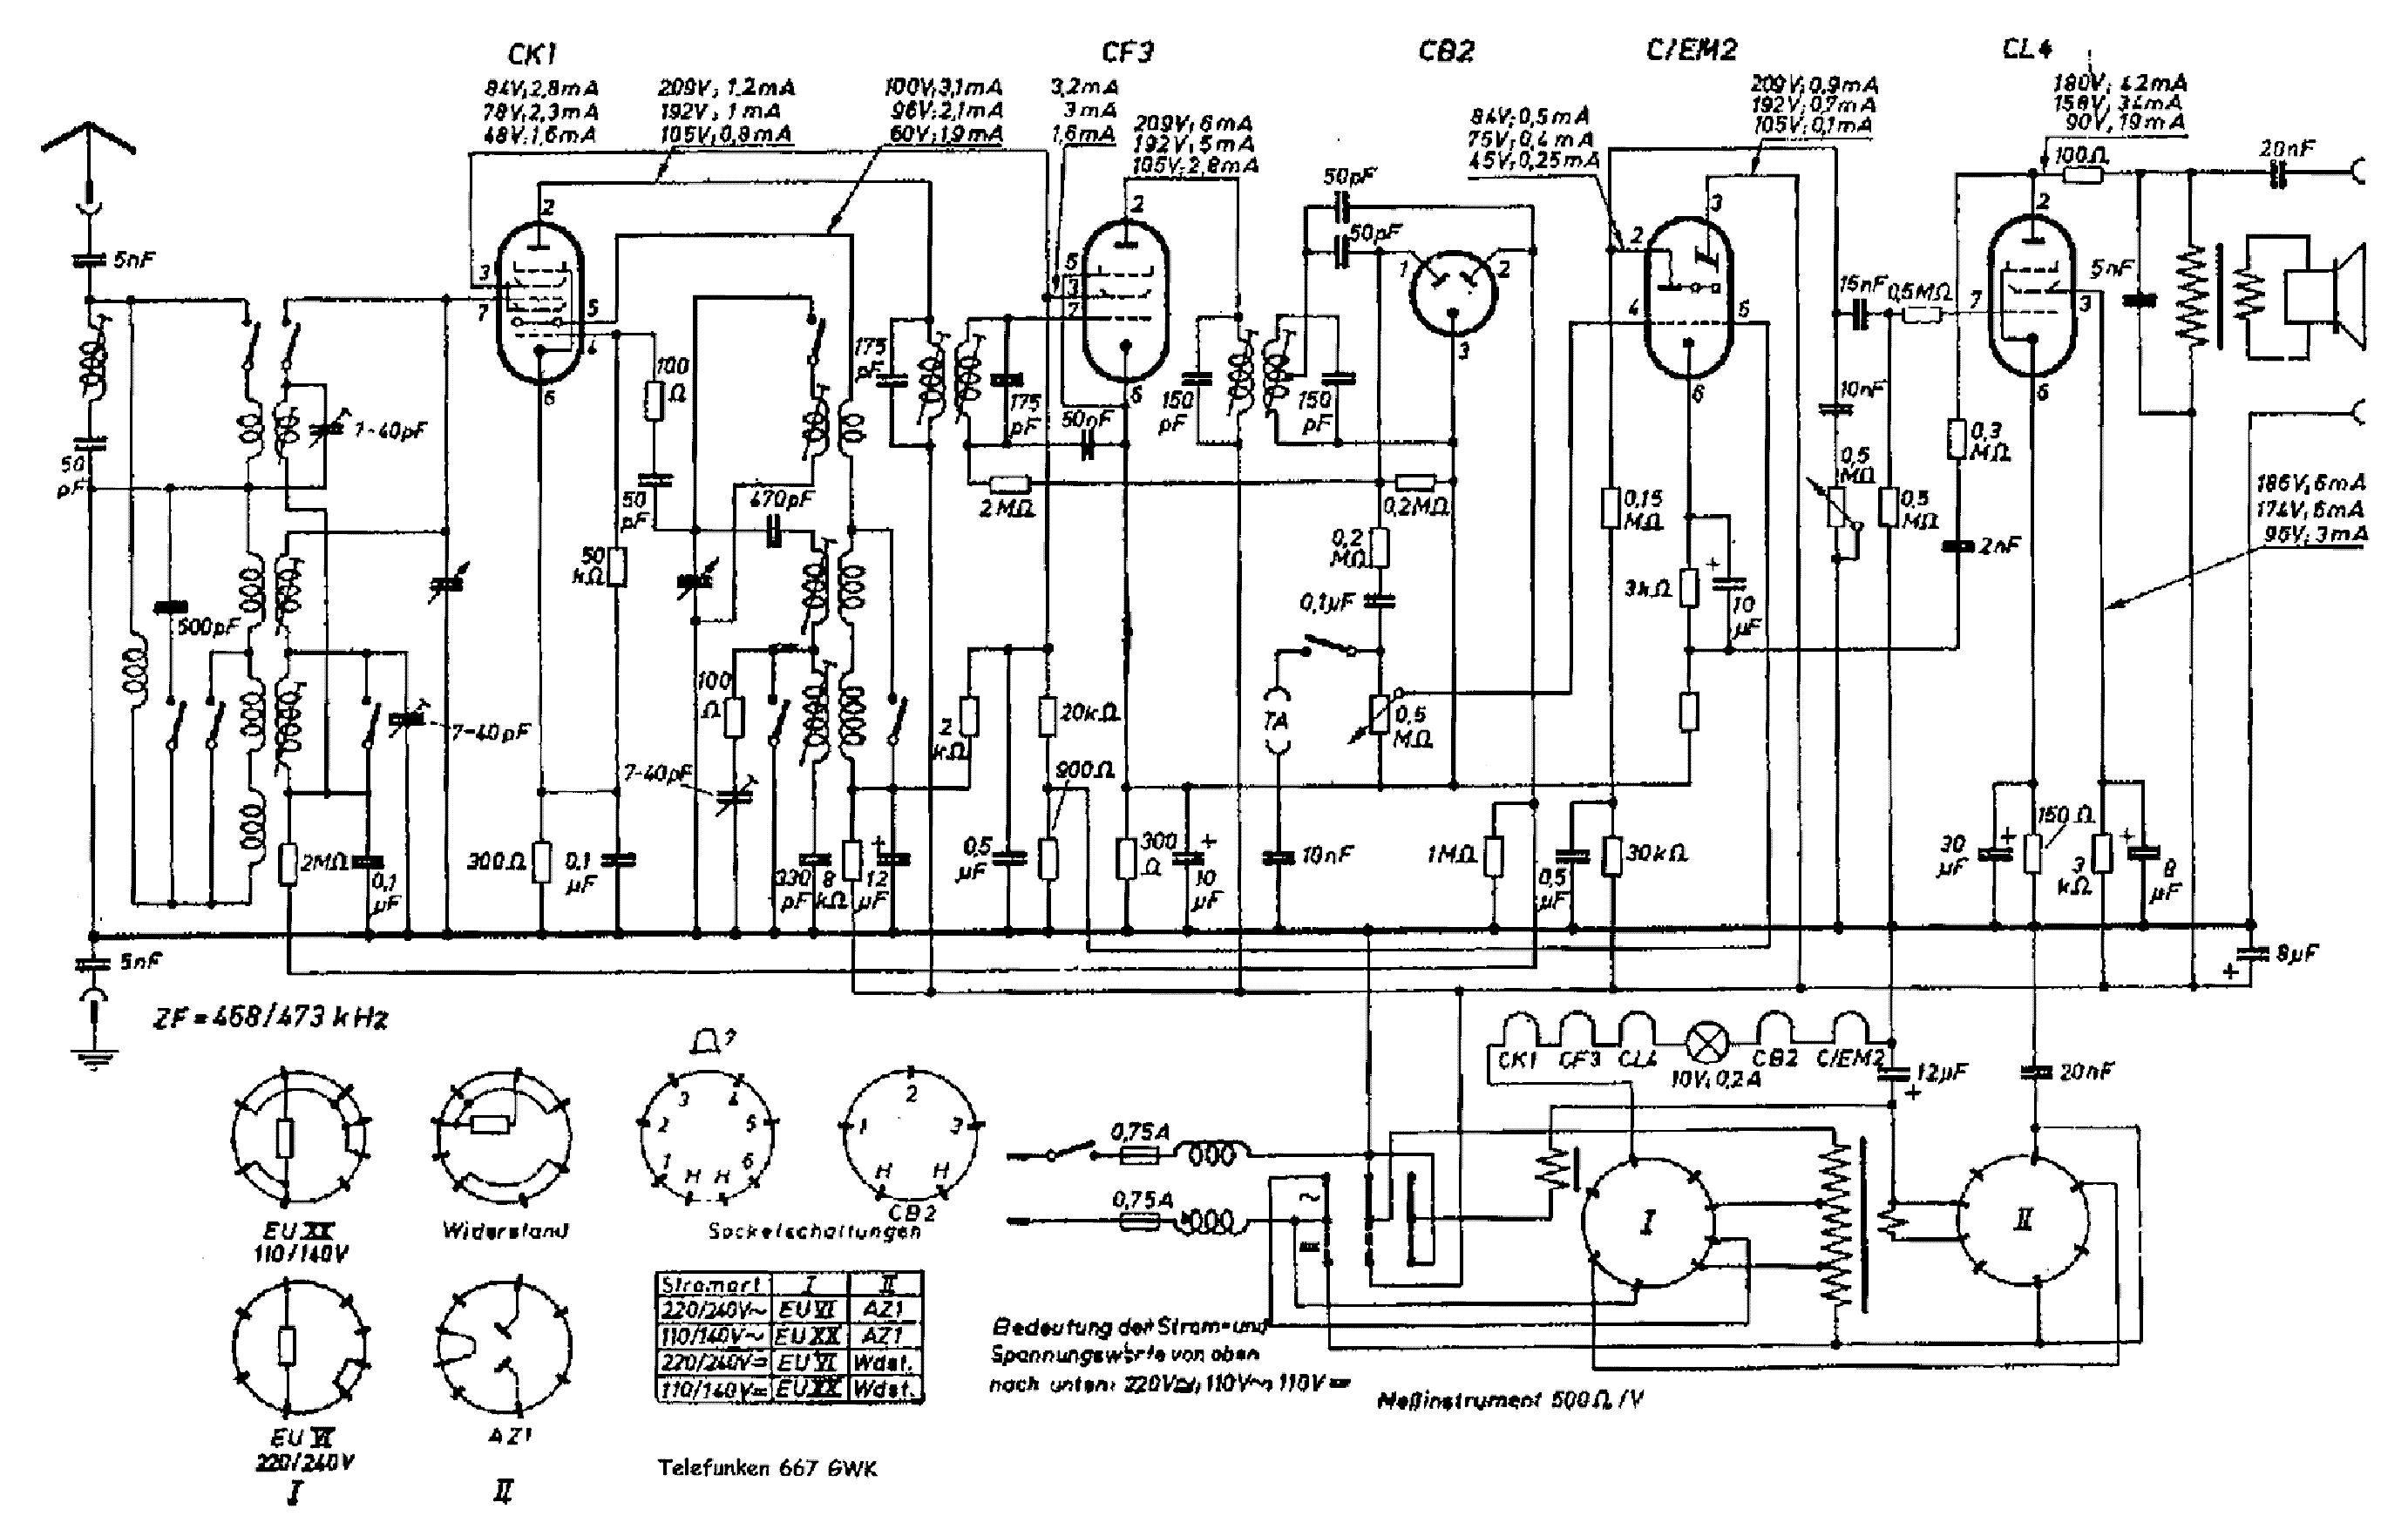 Telefunken 686gwk Radio Sch Service Manual Download